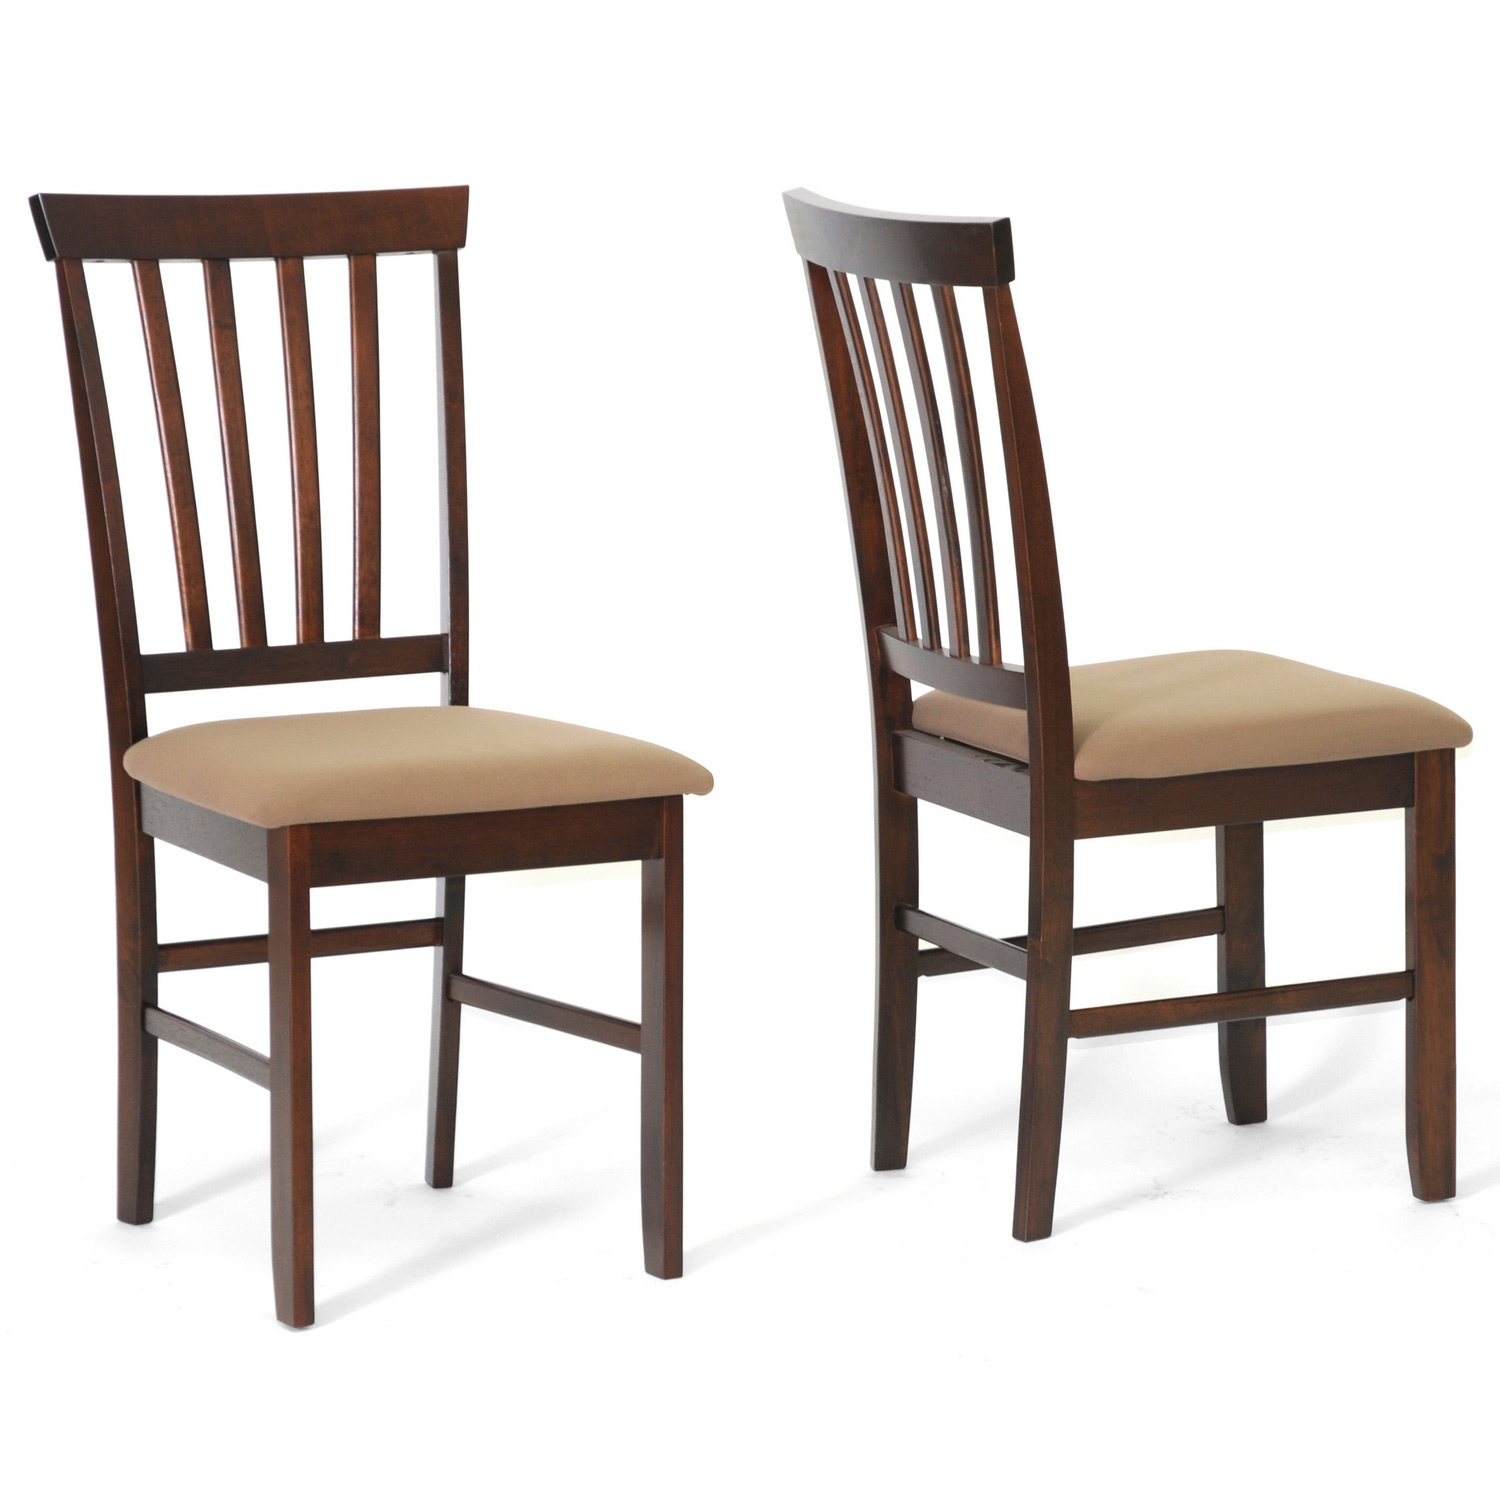 Tiffany brown wood modern dining chairs set of 2 by for Contemporary designer dining chairs